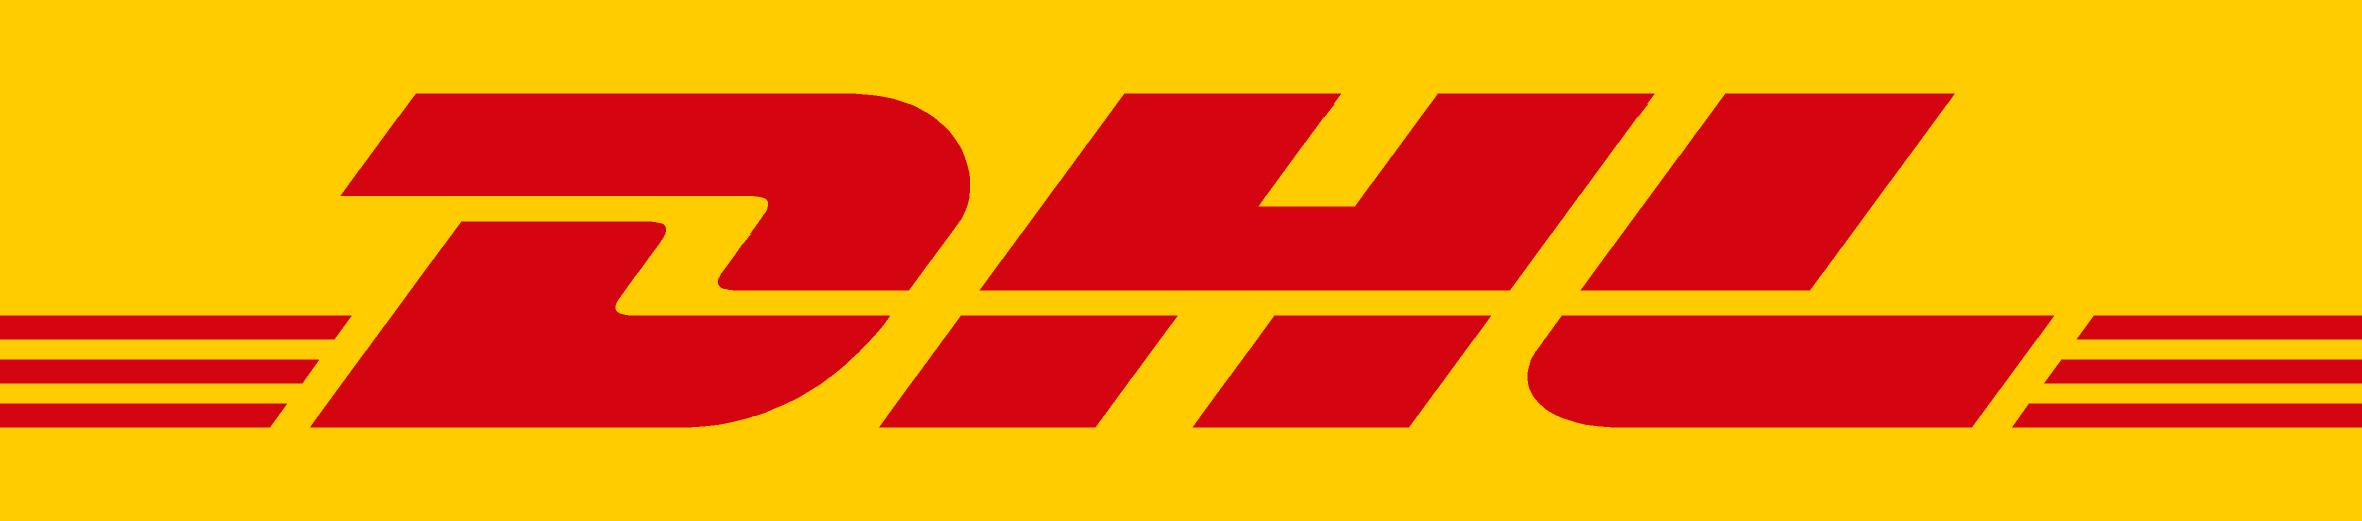 African oil & energy sector fuelling global investor growth, says DHL